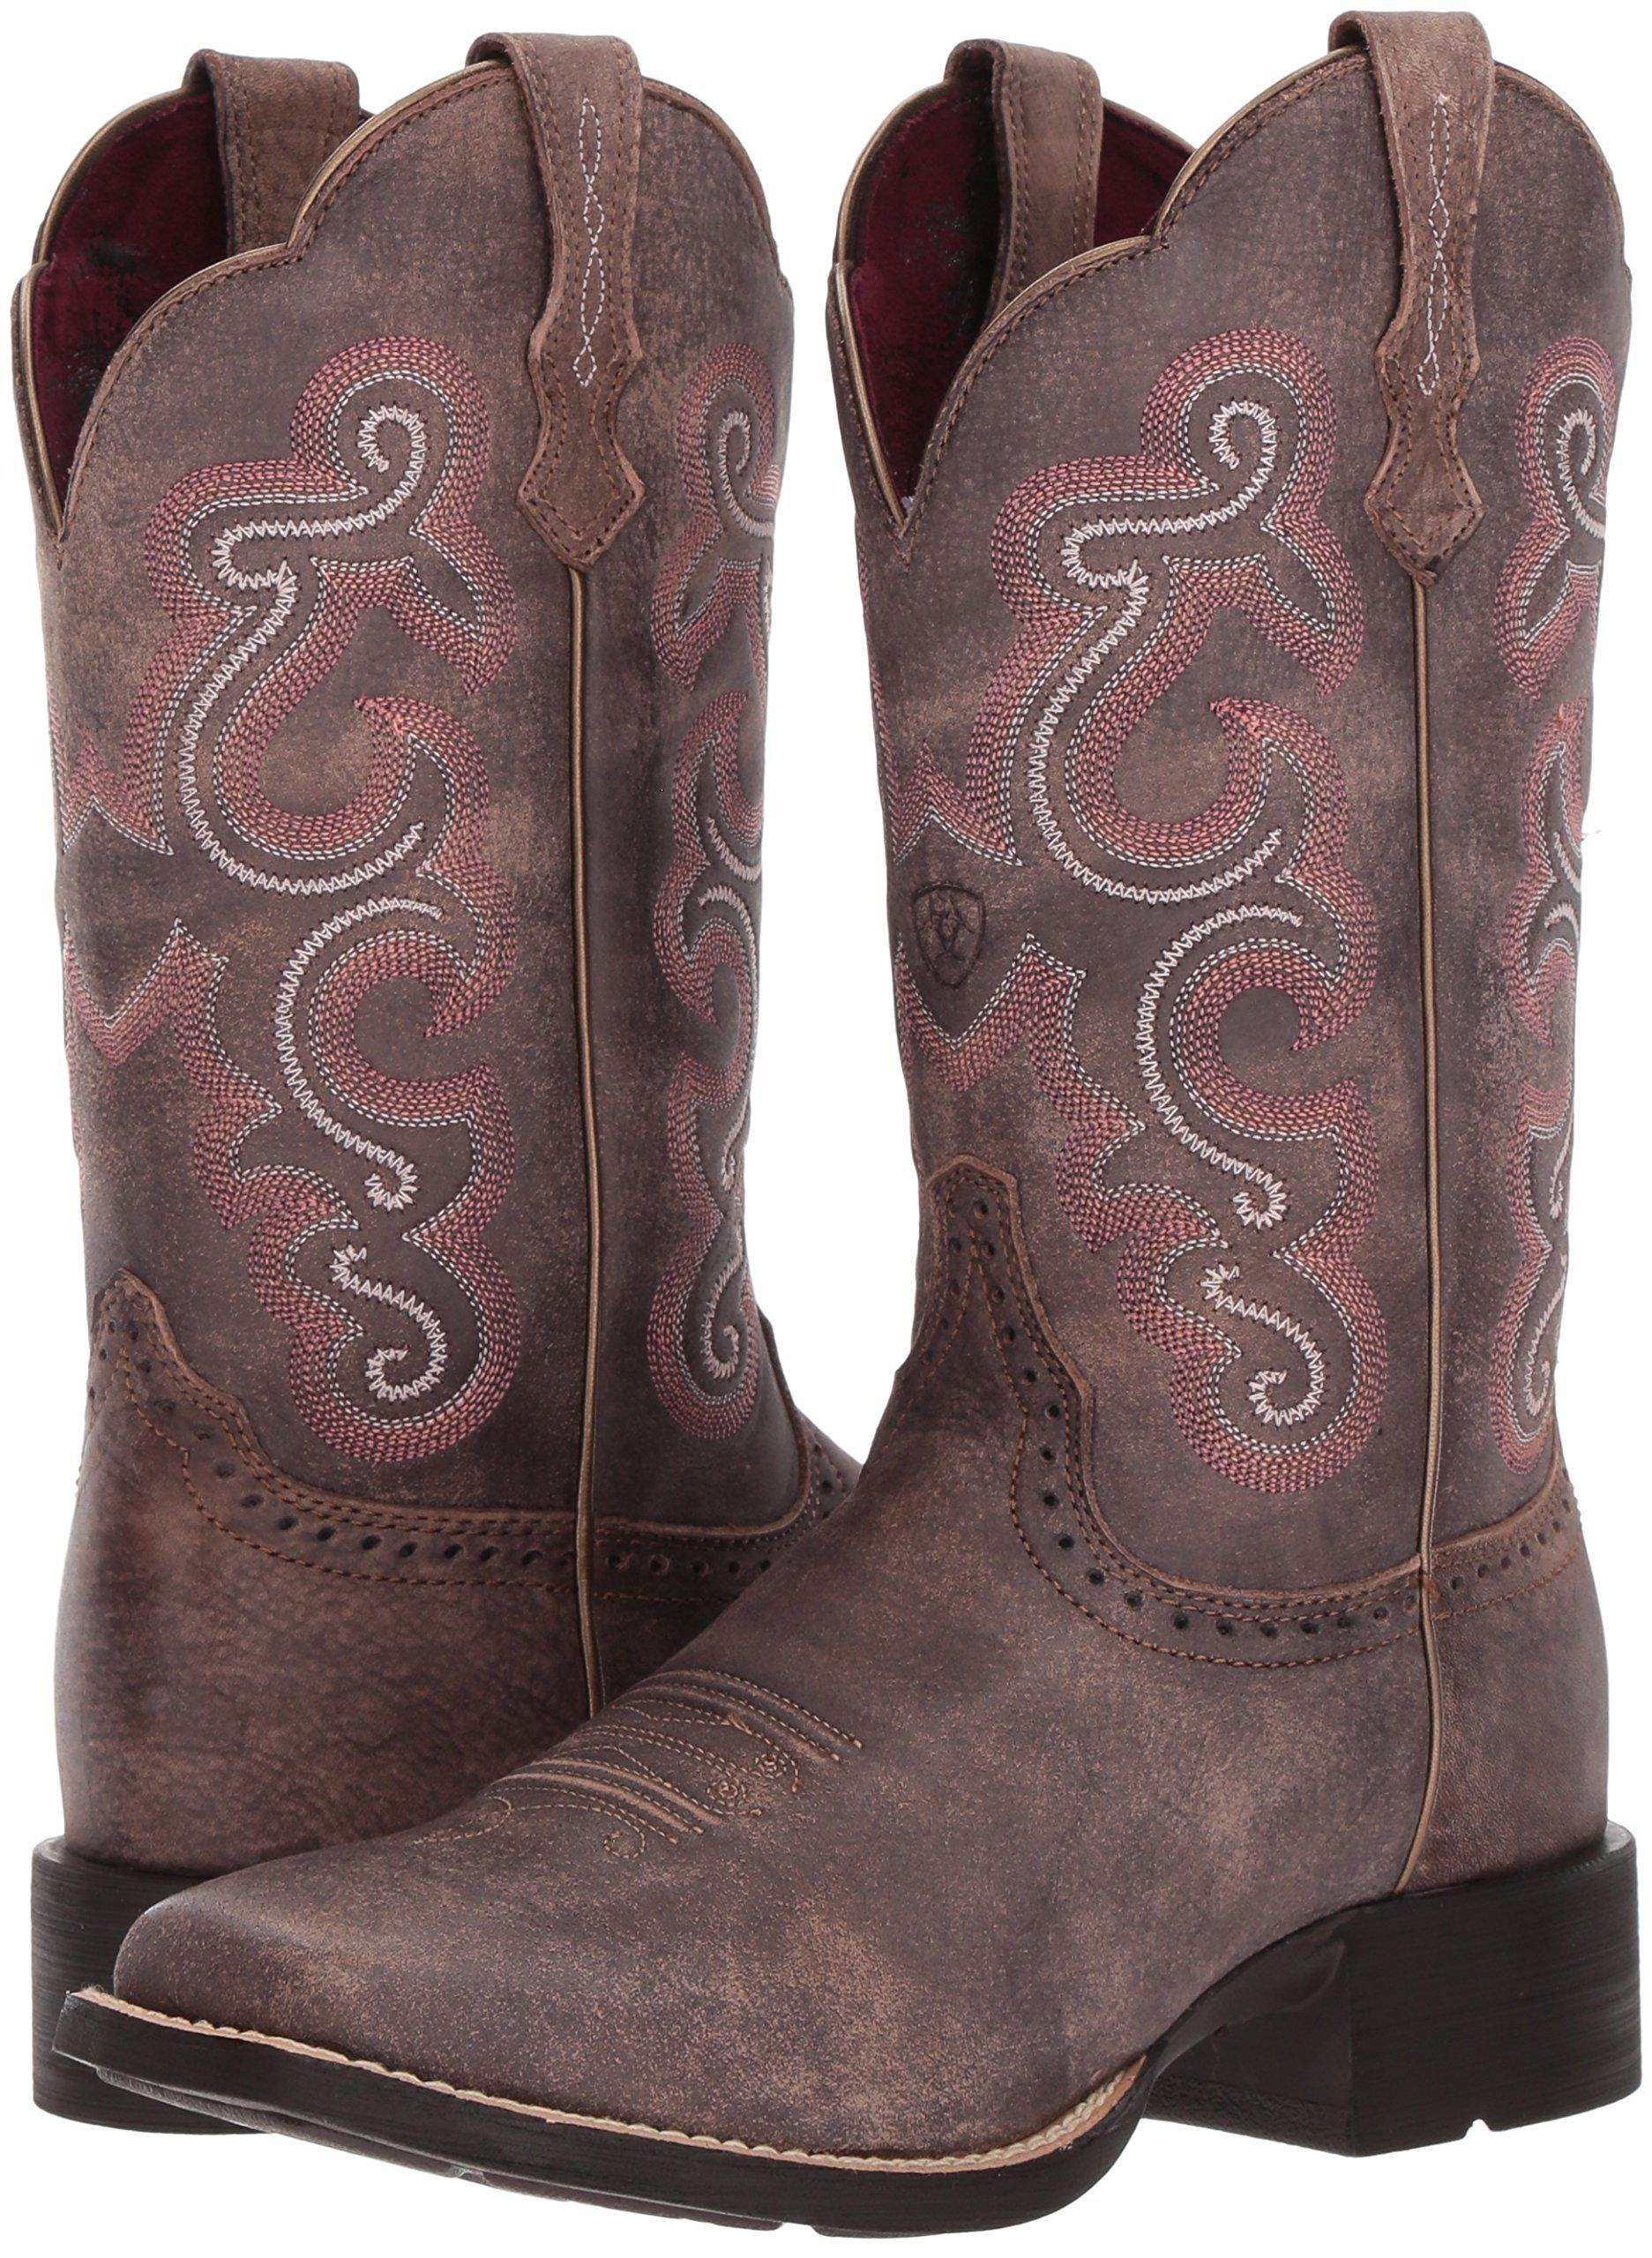 Ariat Womens Quickdraw Work Boot Tack Room Chocolate 10 B US *** For more